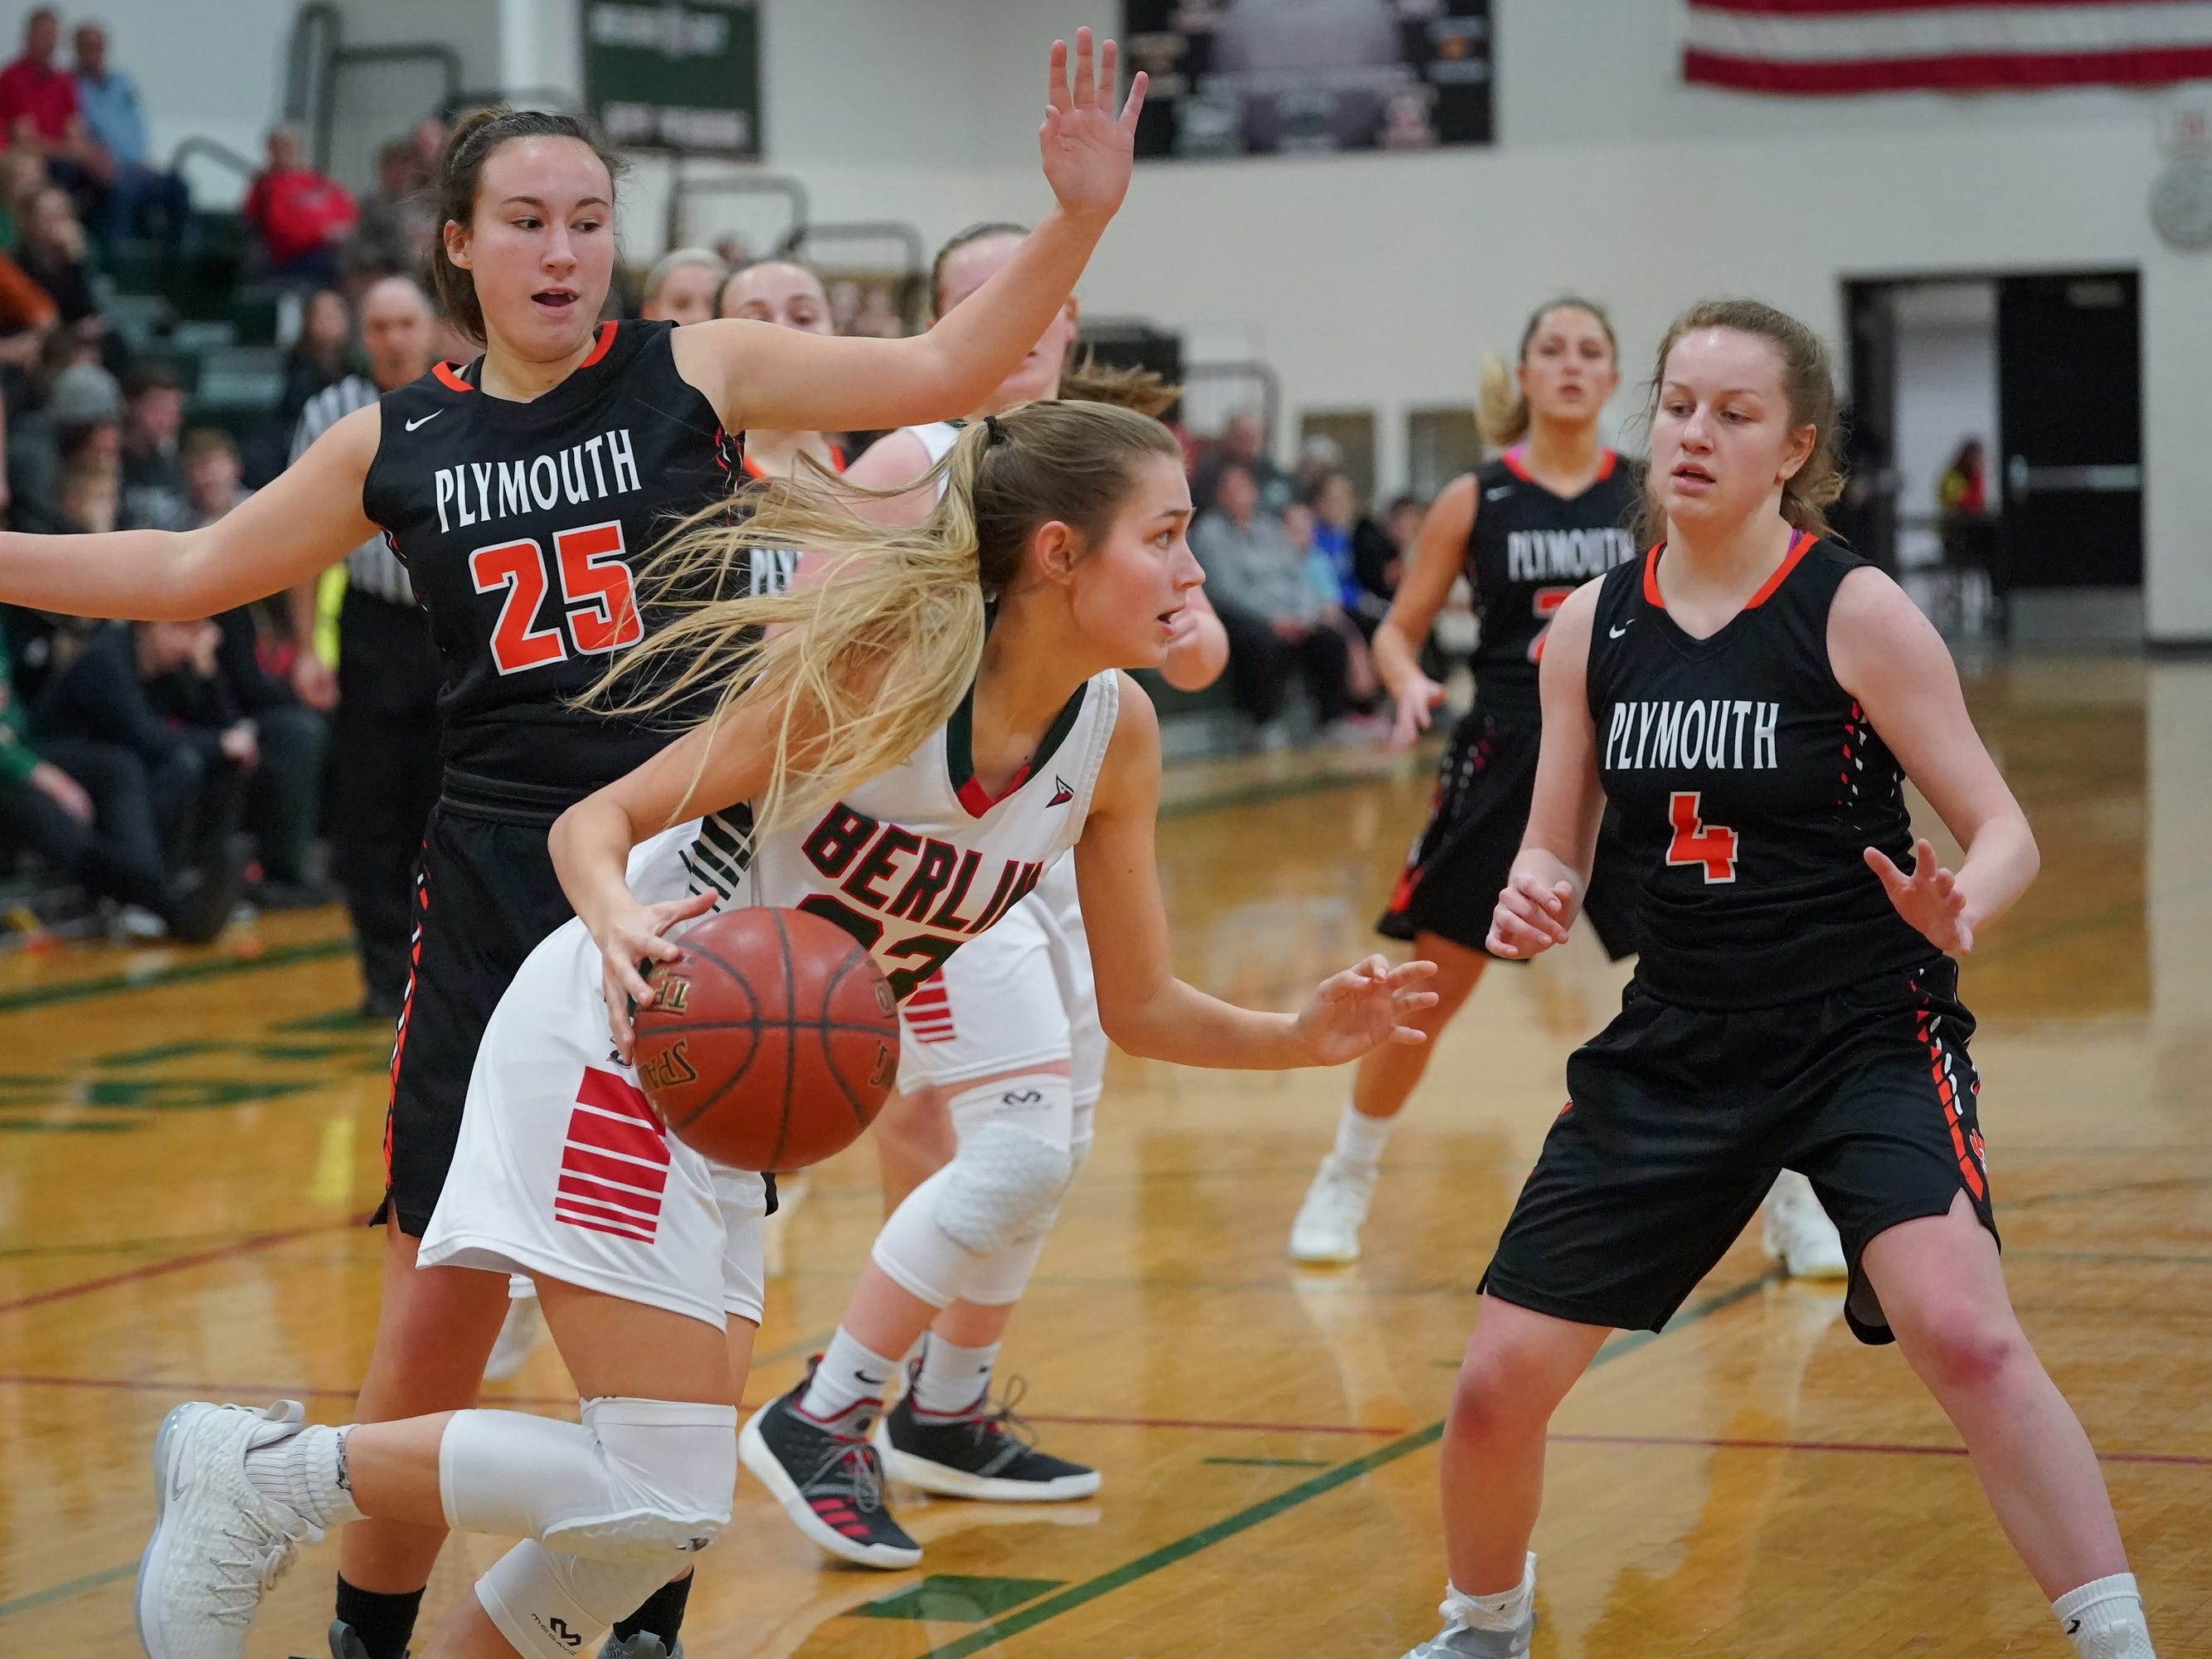 Emily Klawitter (23) of Berlin drives under the basket for a shot. The Berlin Indians hosted the Plymouth Panthers in an East Central Conference basketball game Thursday evening, December 13, 2018.